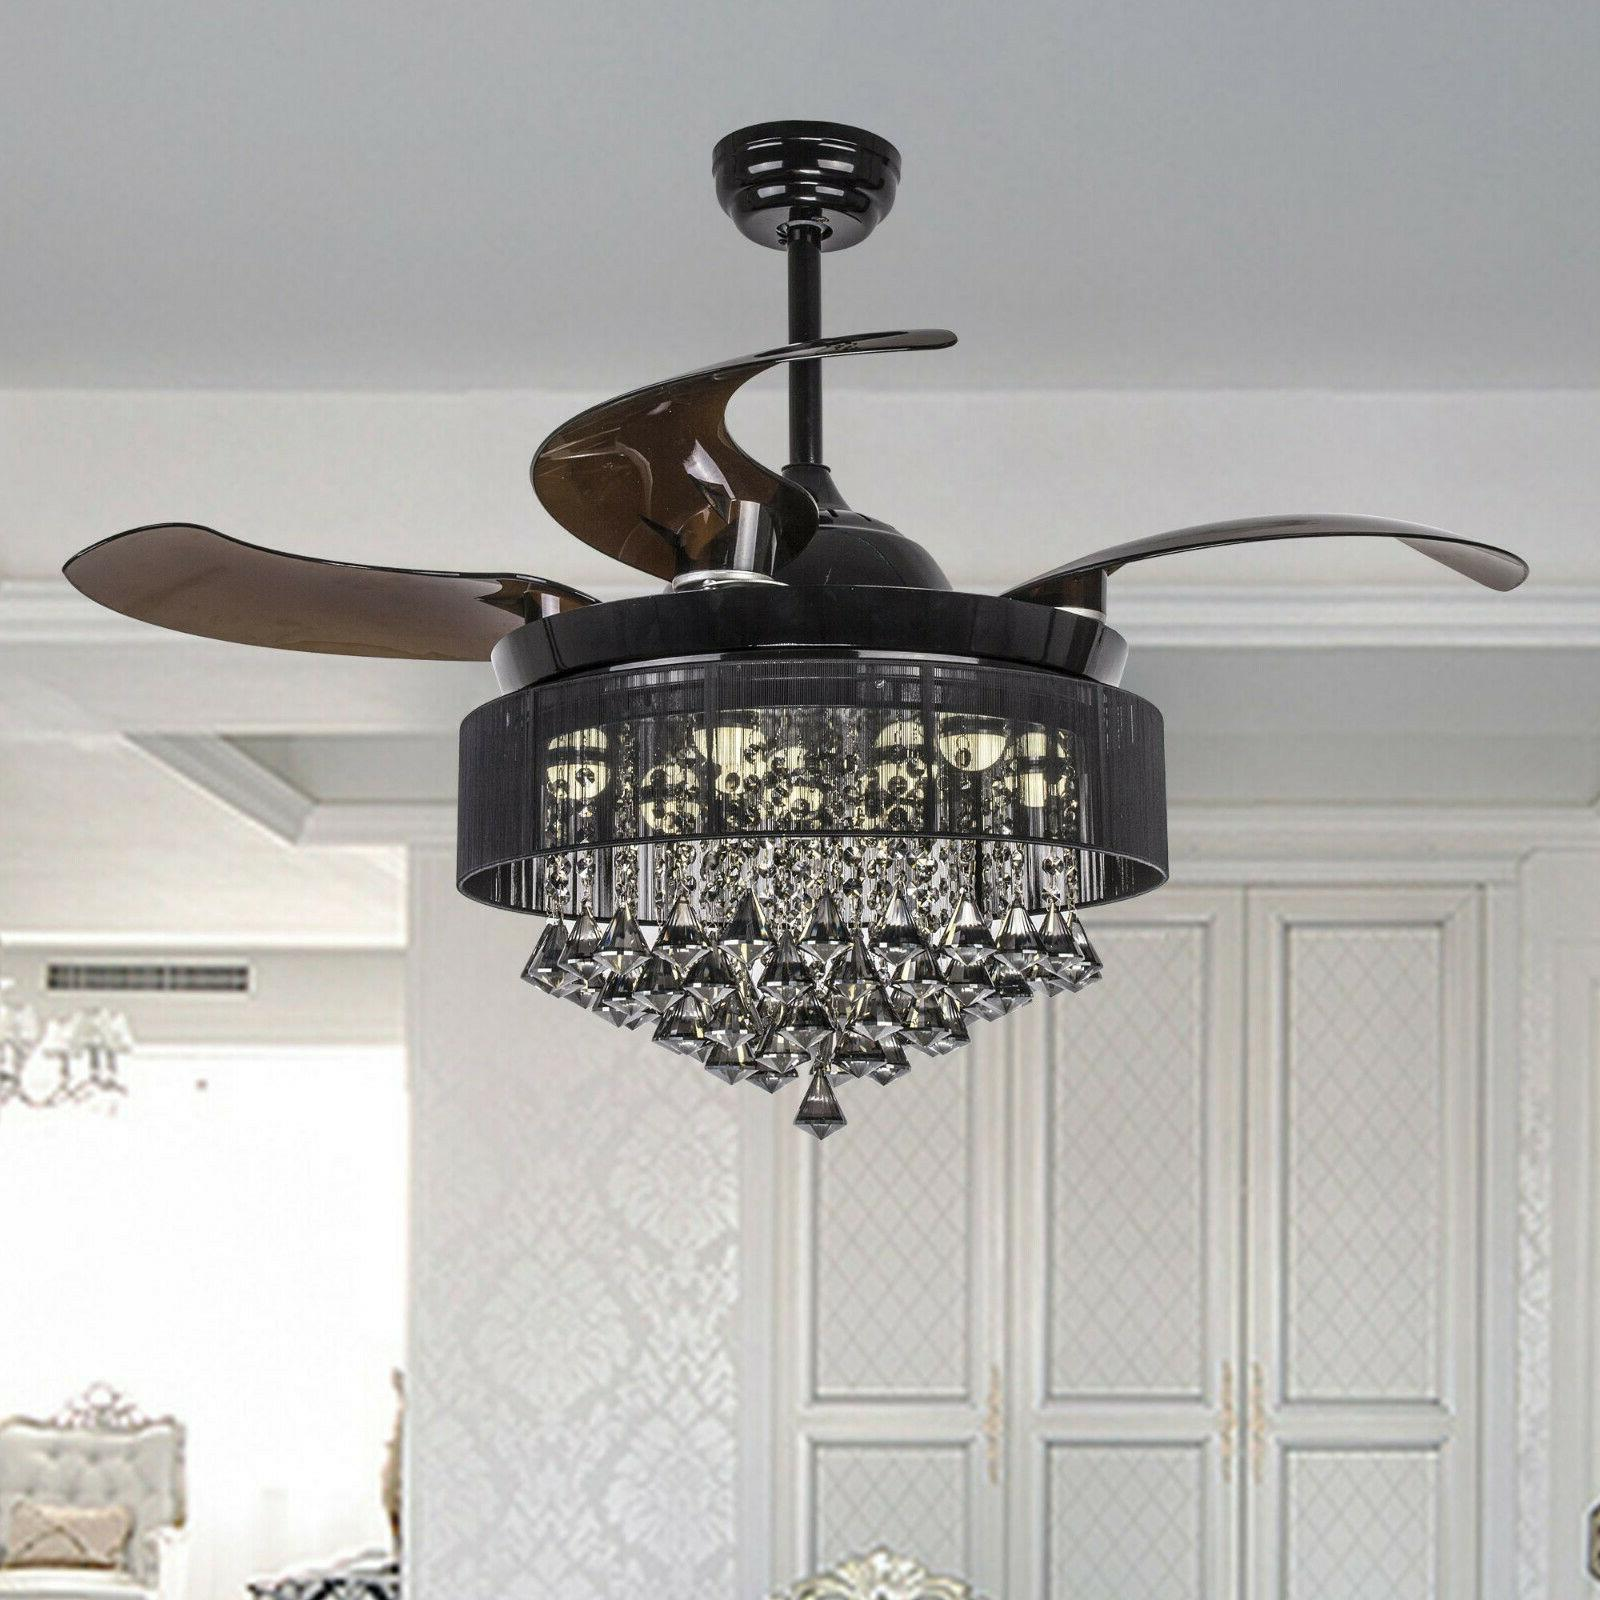 "46"" Crystal Chandelier Fan Remote Control Ceiling Fan Lights"